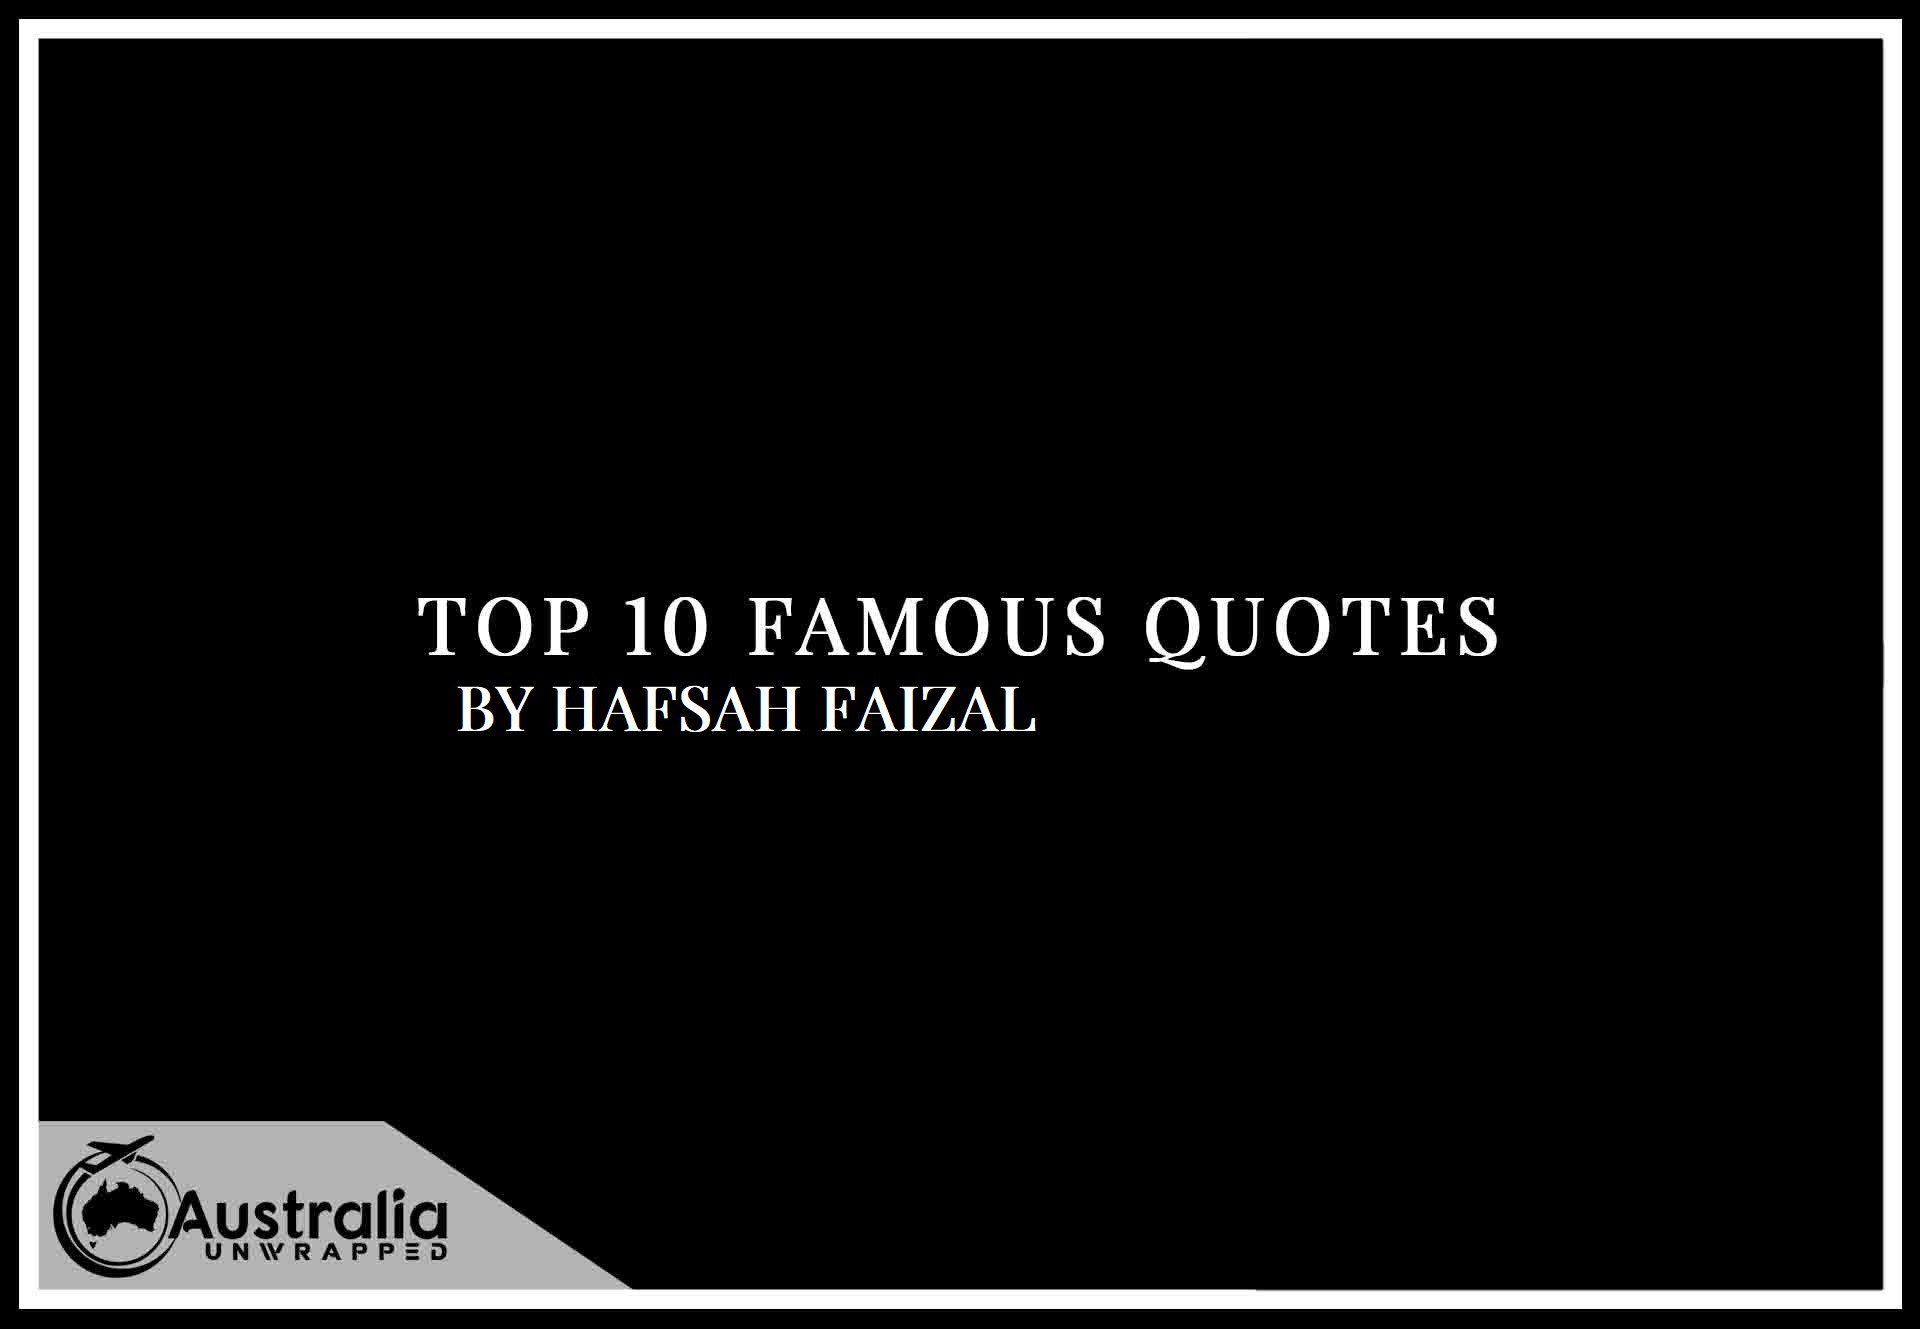 Top 10 Famous Quotes by Author Hafsah Faizal